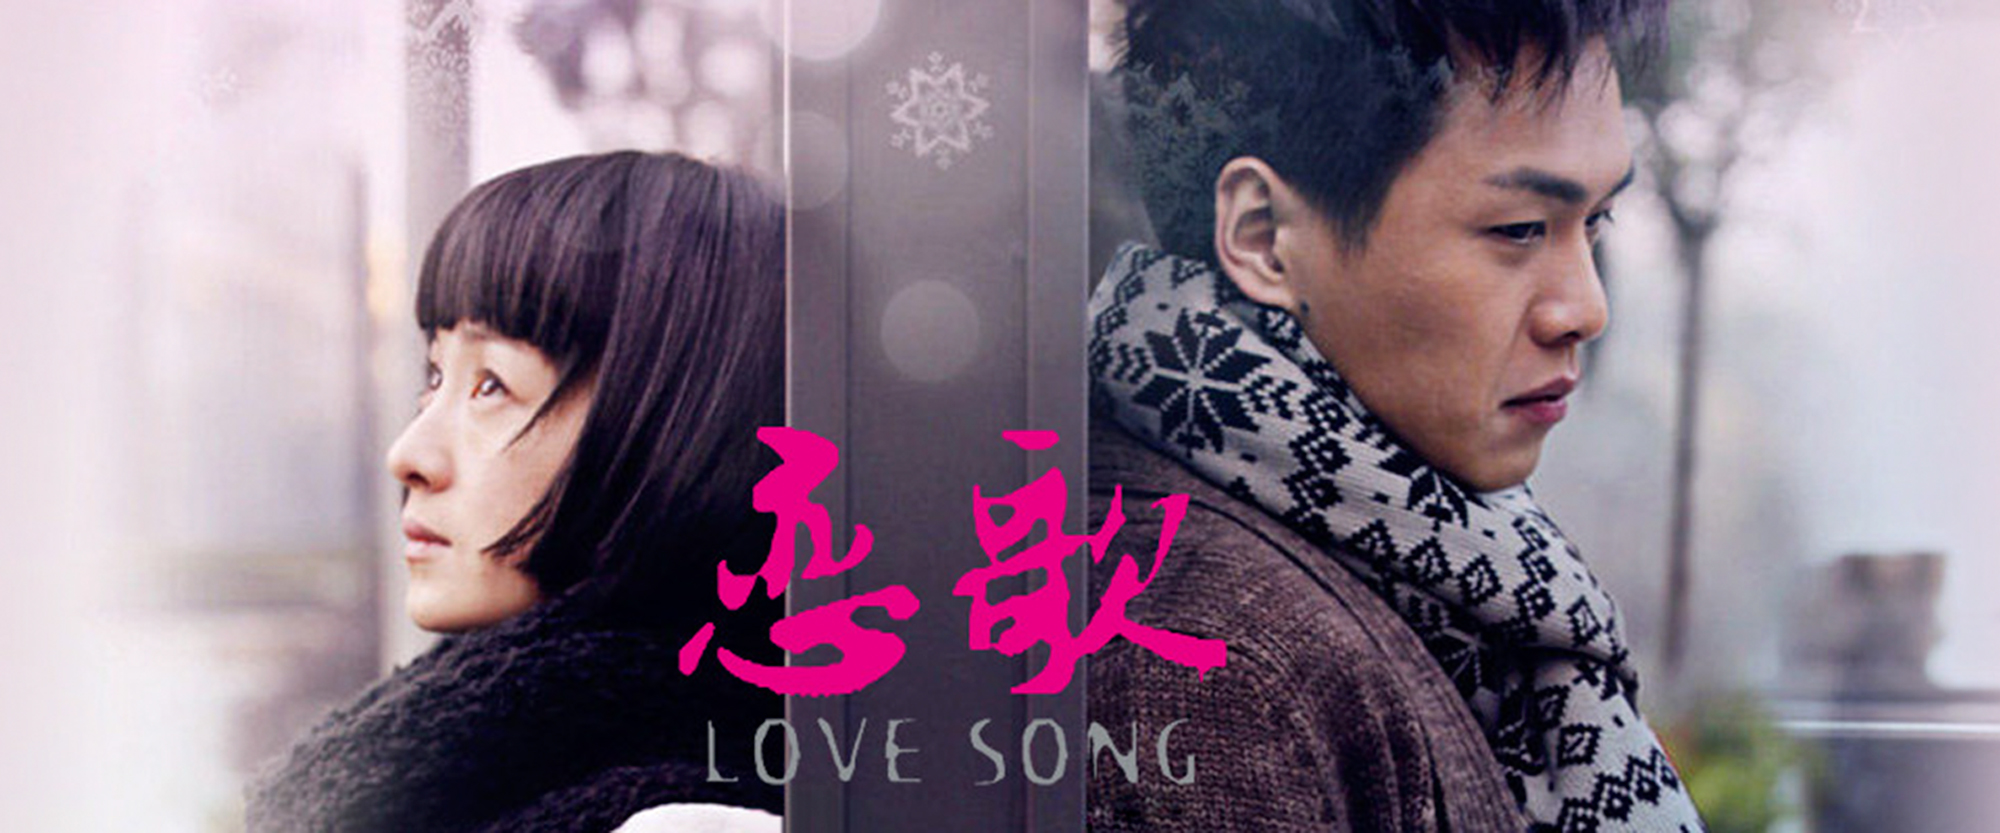 lovesong1